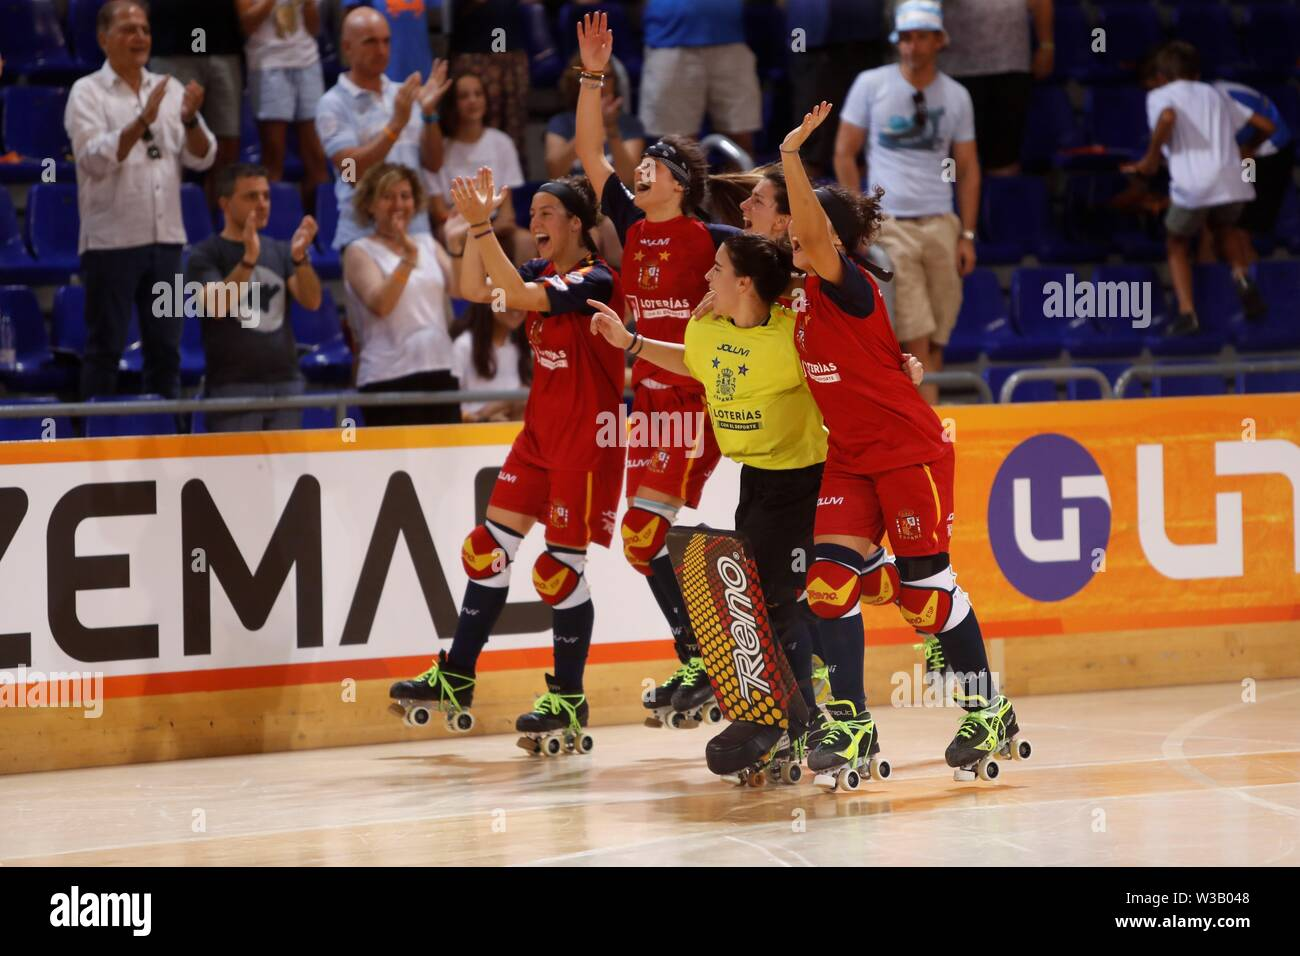 Barcelona, Spain. 14th July, 2019. Spanish National Roller Hockey Team's players celebrate after defeating Argentina in the women's roller hockey final match as part of World Roller Games in Barcelona, Spain, 14 July 2019. Spain won 8-5. Credit: Toni Albir/EFE/Alamy Live News - Stock Image